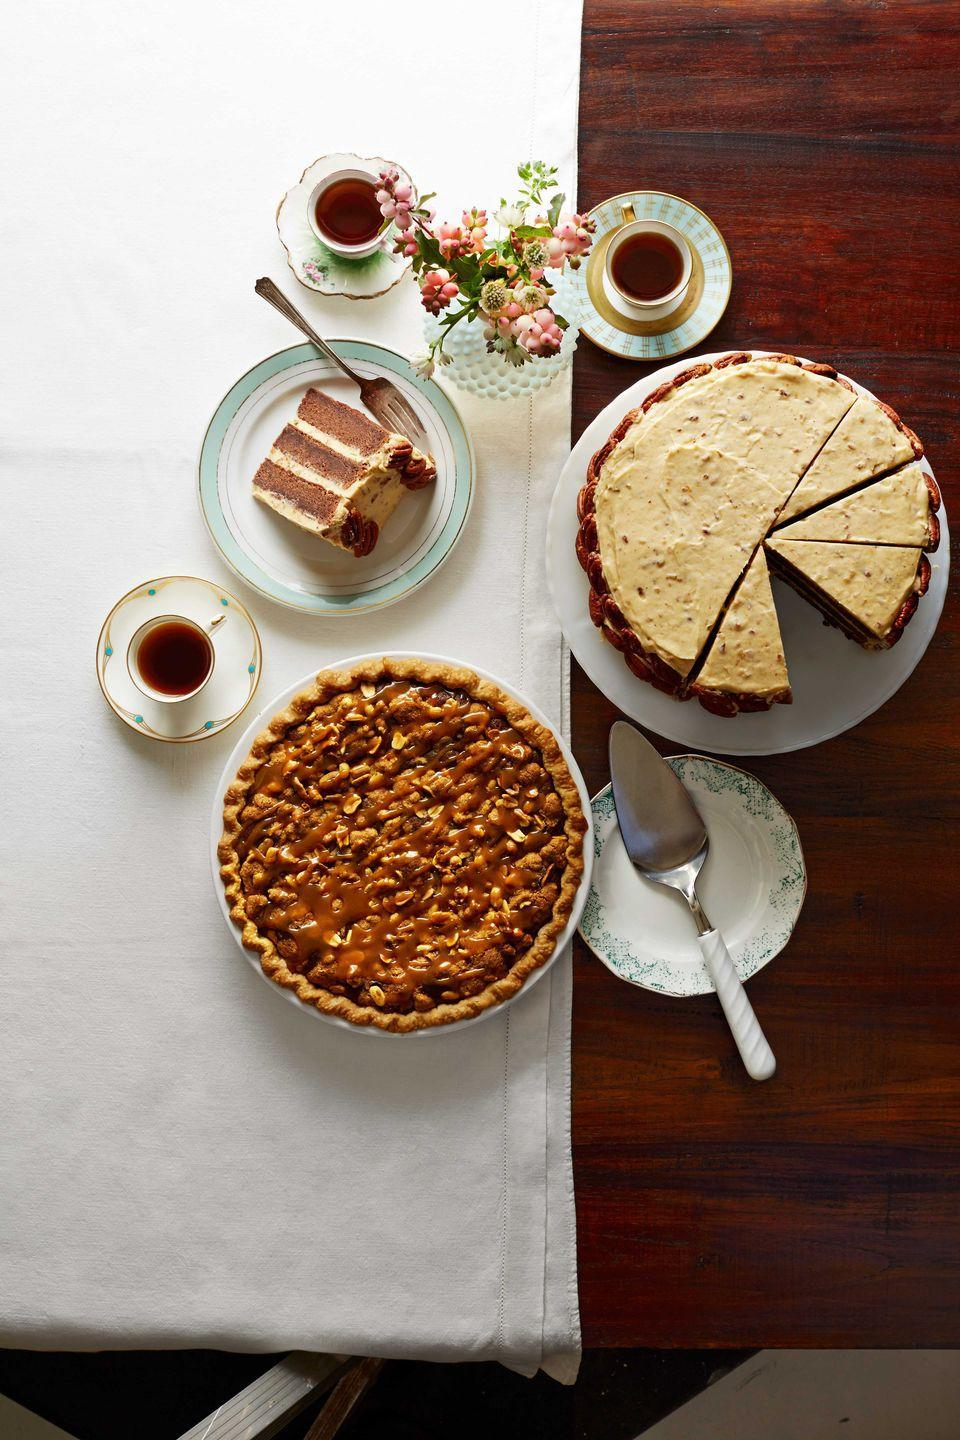 """<p>The salted caramel and peanut butter topping on this pie makes this a dessert no one will forget!</p><p><strong><a href=""""https://www.countryliving.com/food-drinks/recipes/a5906/salted-caramel-peanut-butter-fudge-pie-recipe-clx1114/"""" rel=""""nofollow noopener"""" target=""""_blank"""" data-ylk=""""slk:Get the recipe"""" class=""""link rapid-noclick-resp"""">Get the recipe</a>.</strong> </p>"""